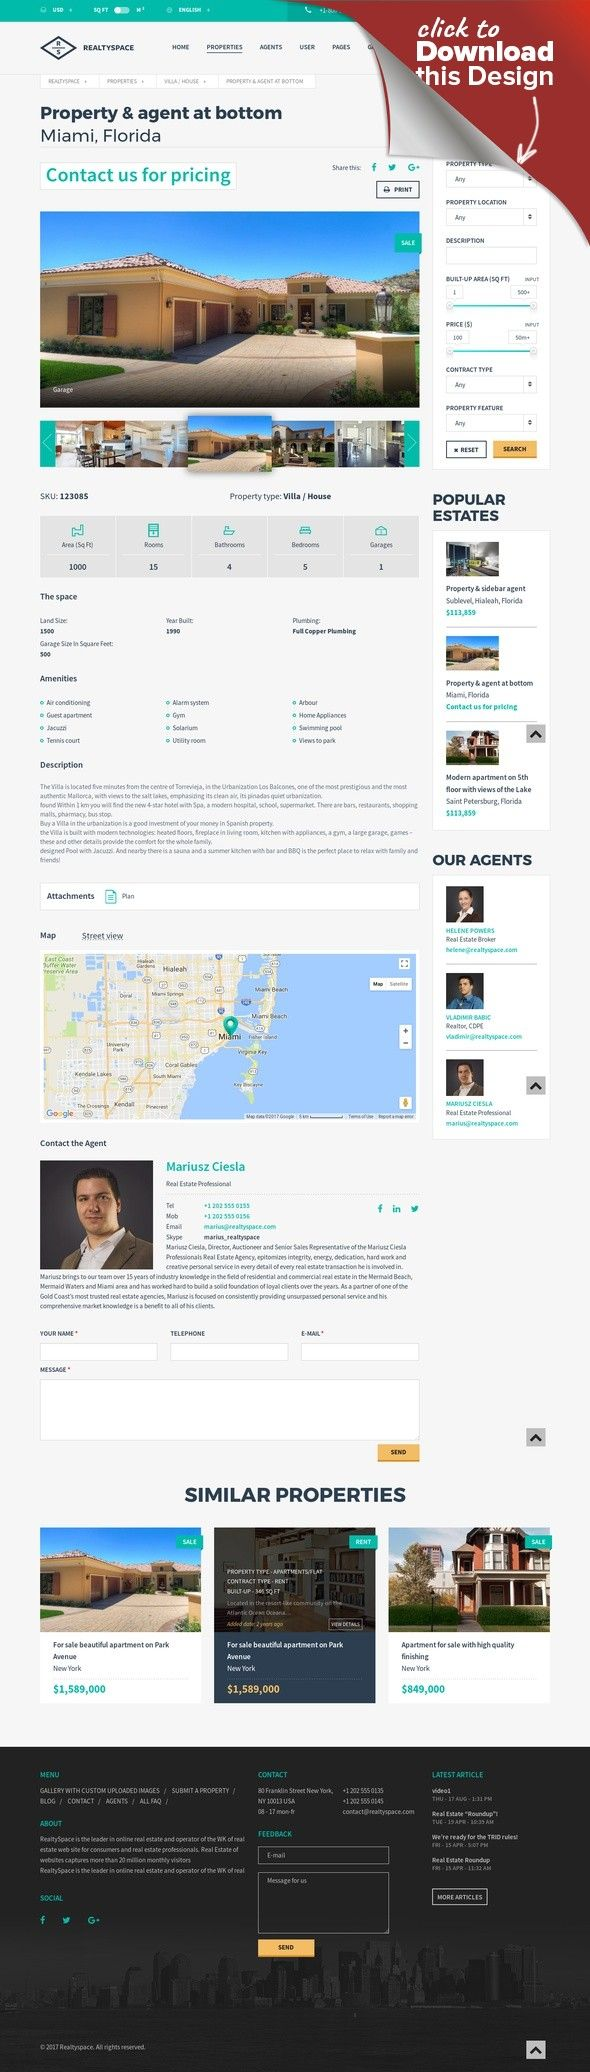 Realtyspace - Real estate WordPress Theme brokerage, business, dsidxpress, google maps and street view, idx, ihomefinder, MLS, paypal payments, property settings, real estate, real estate agent, realestate agency, realtor, realtypress crea ddf Realtyspace – Real estate WordPress Theme Realtyspace is the WordPress Theme for real estate agents and agencies. It has a purpose oriented design and it comes loaded with tons of useful featur...